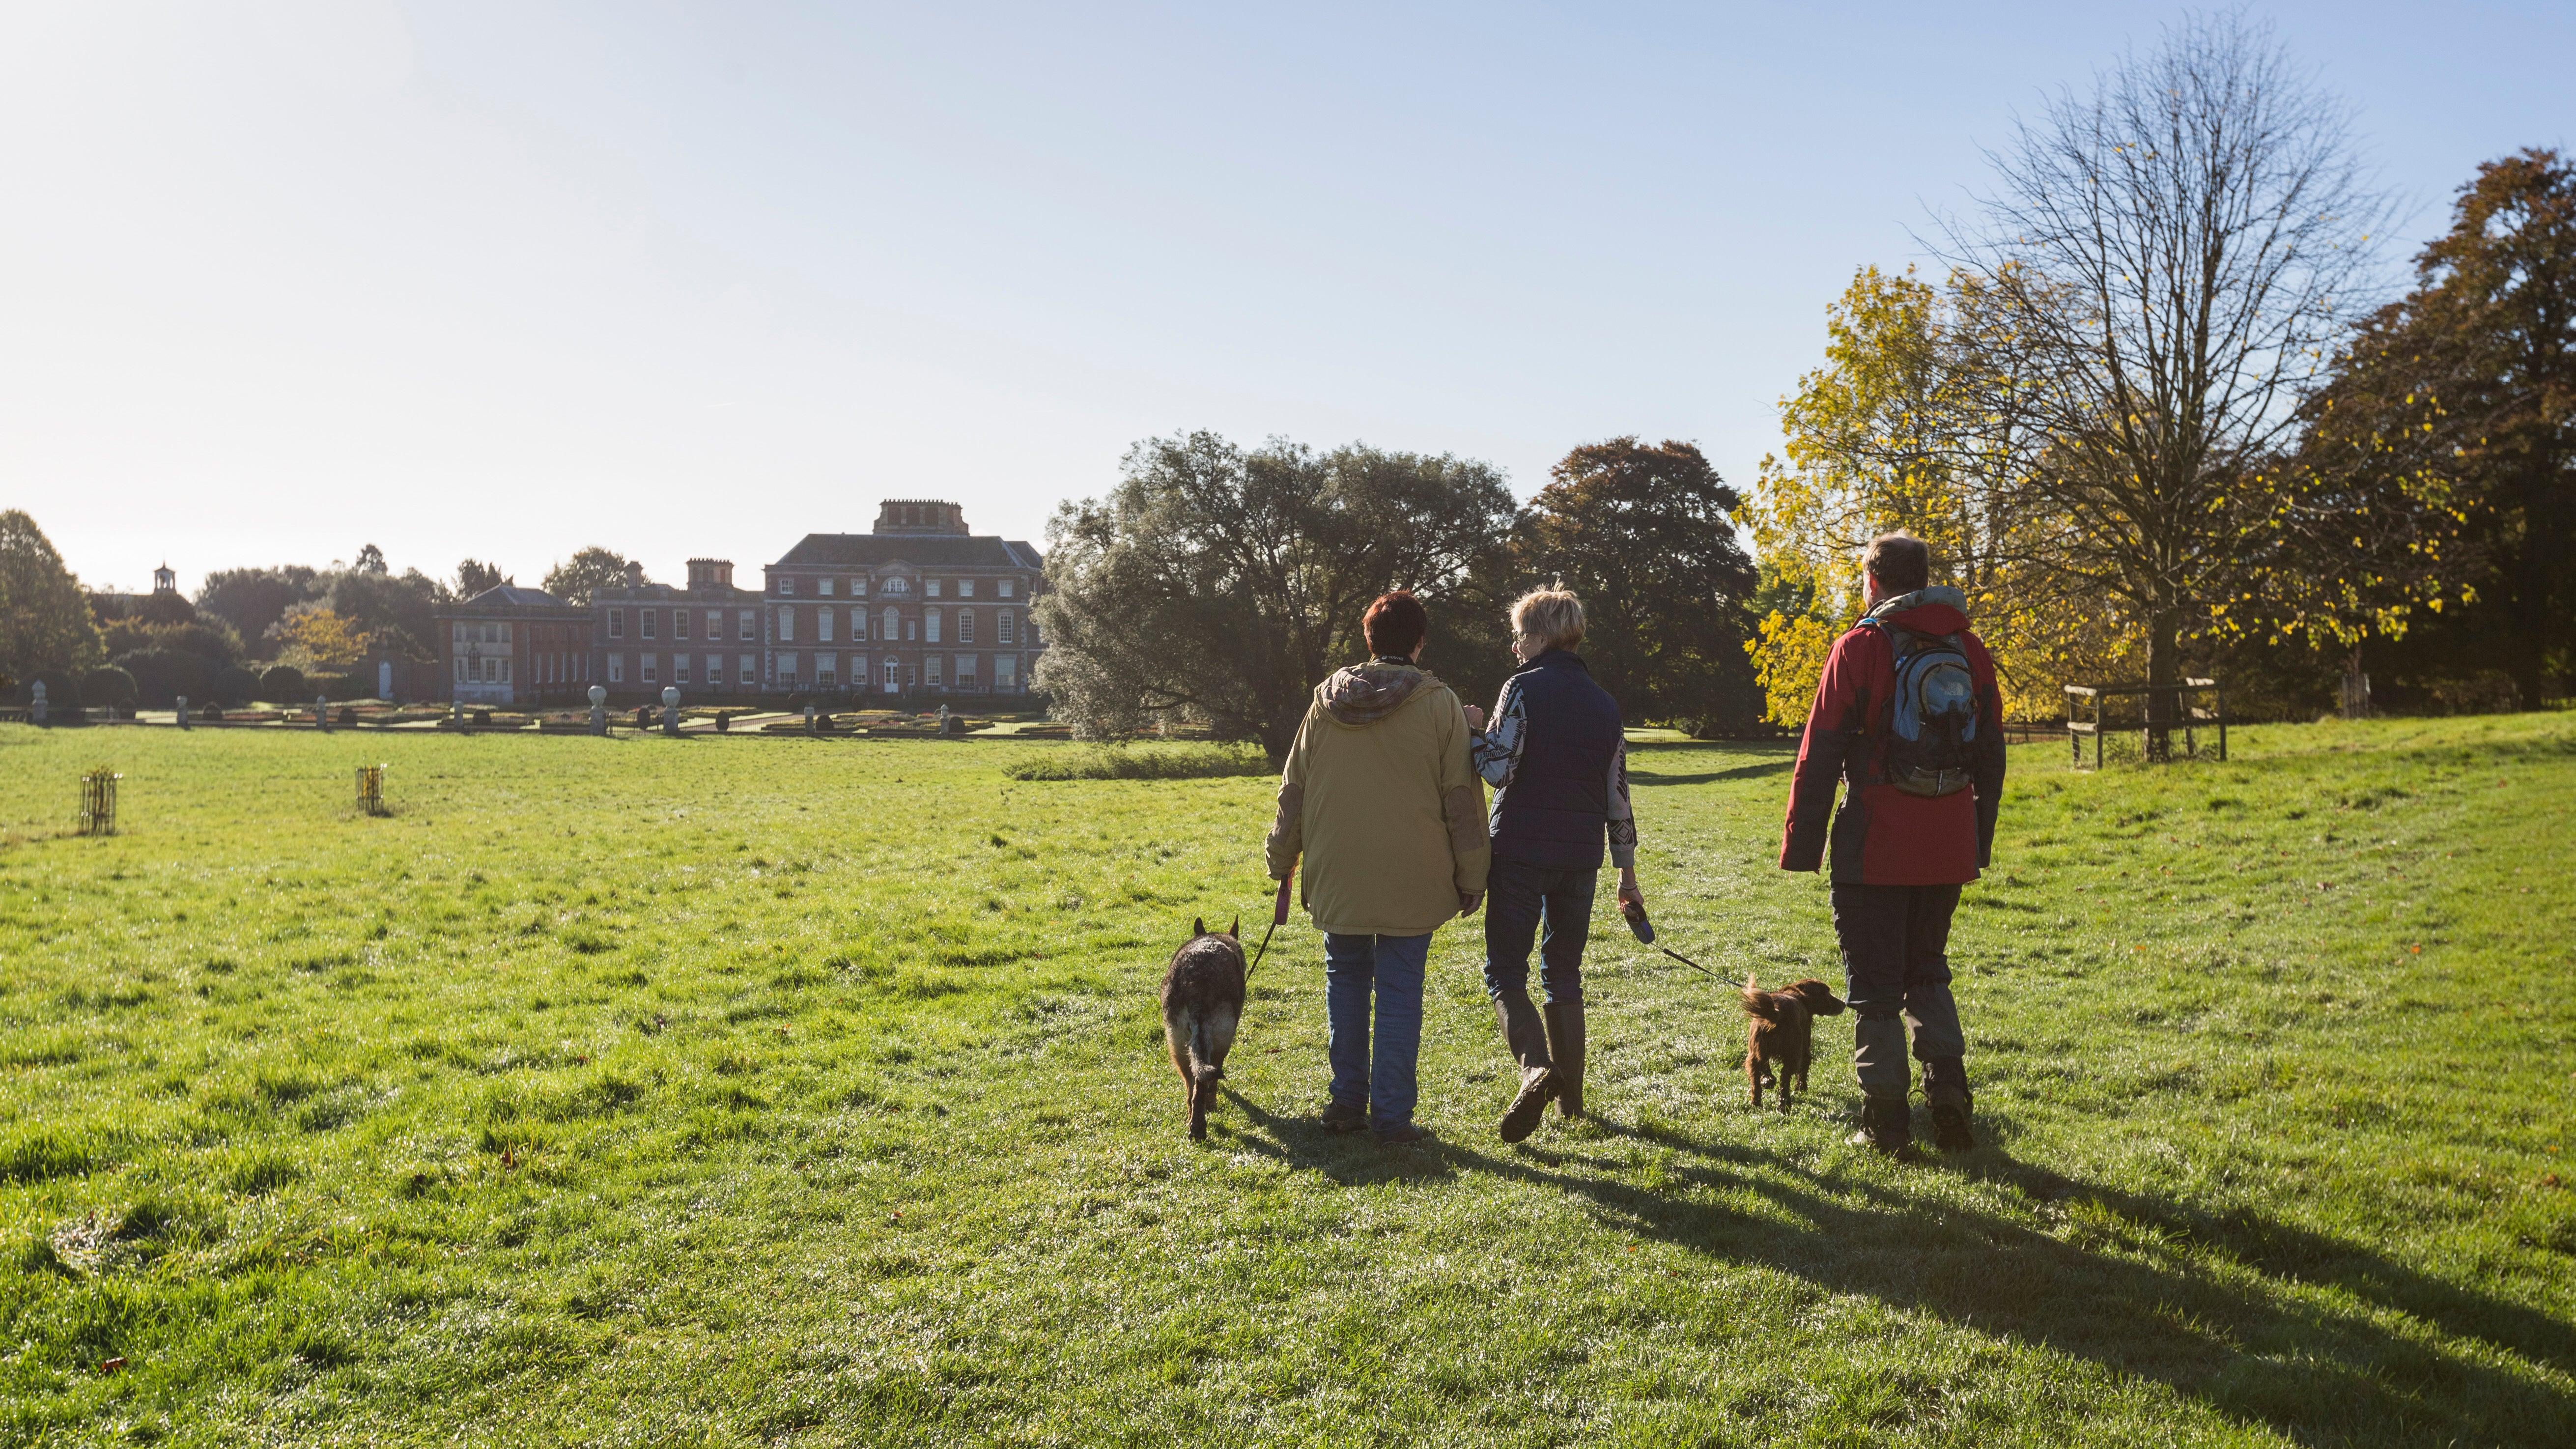 Dog walkers on a sunny Autumn day